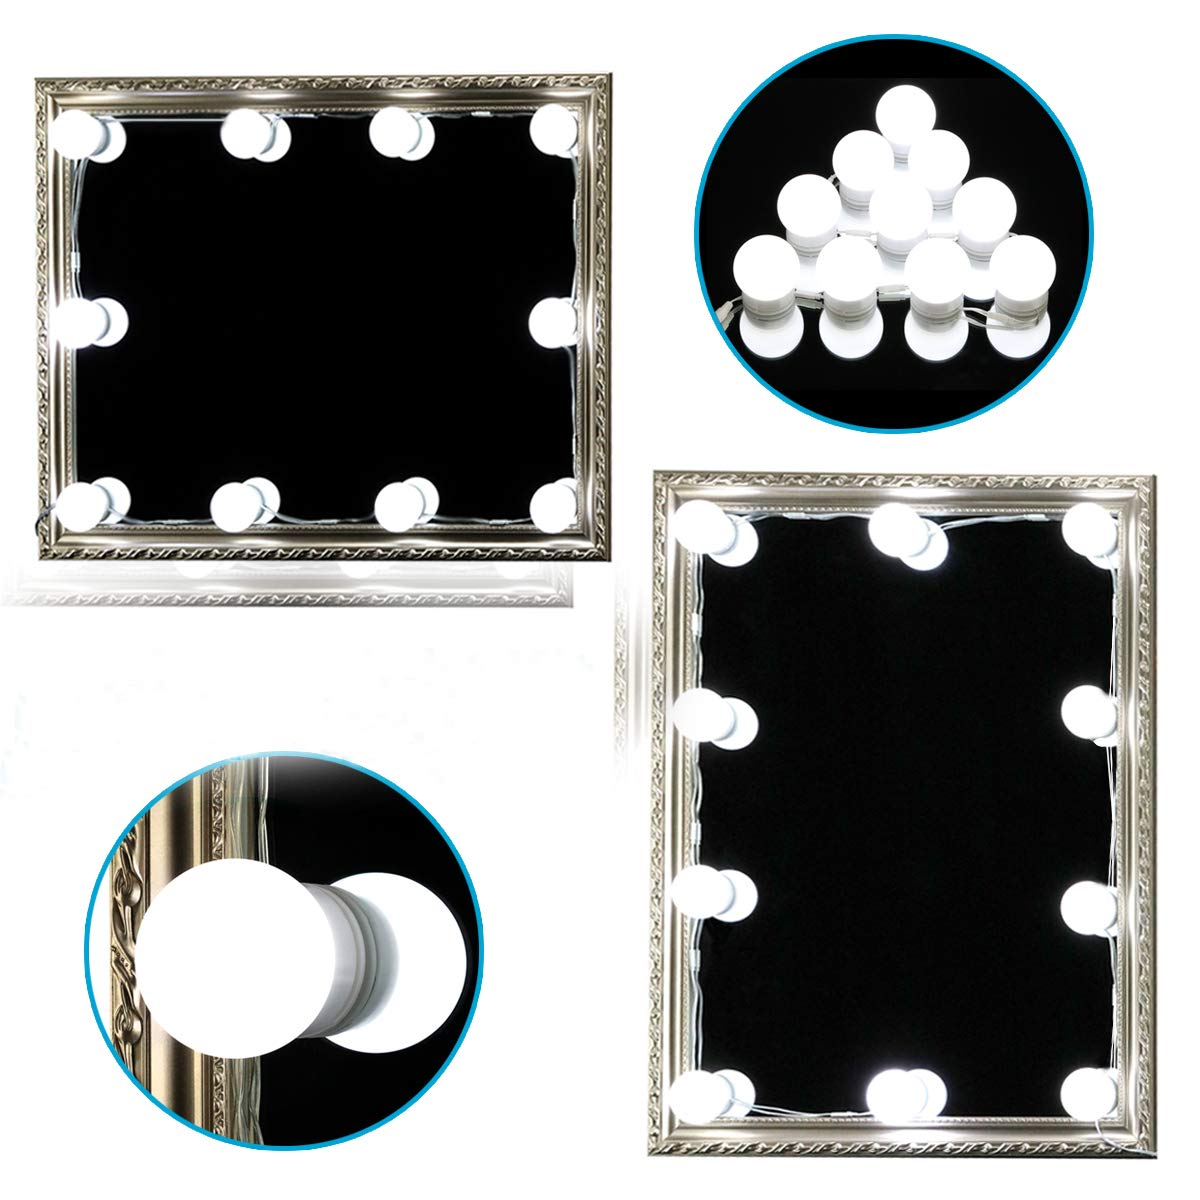 Novolido Hollywood Style LED Vanity Mirror Lights Kit with 10 Dimmable Light Bulbs Lighting Fixture Strip for Makeup Vanity Table Set Dressing Table (New Version)